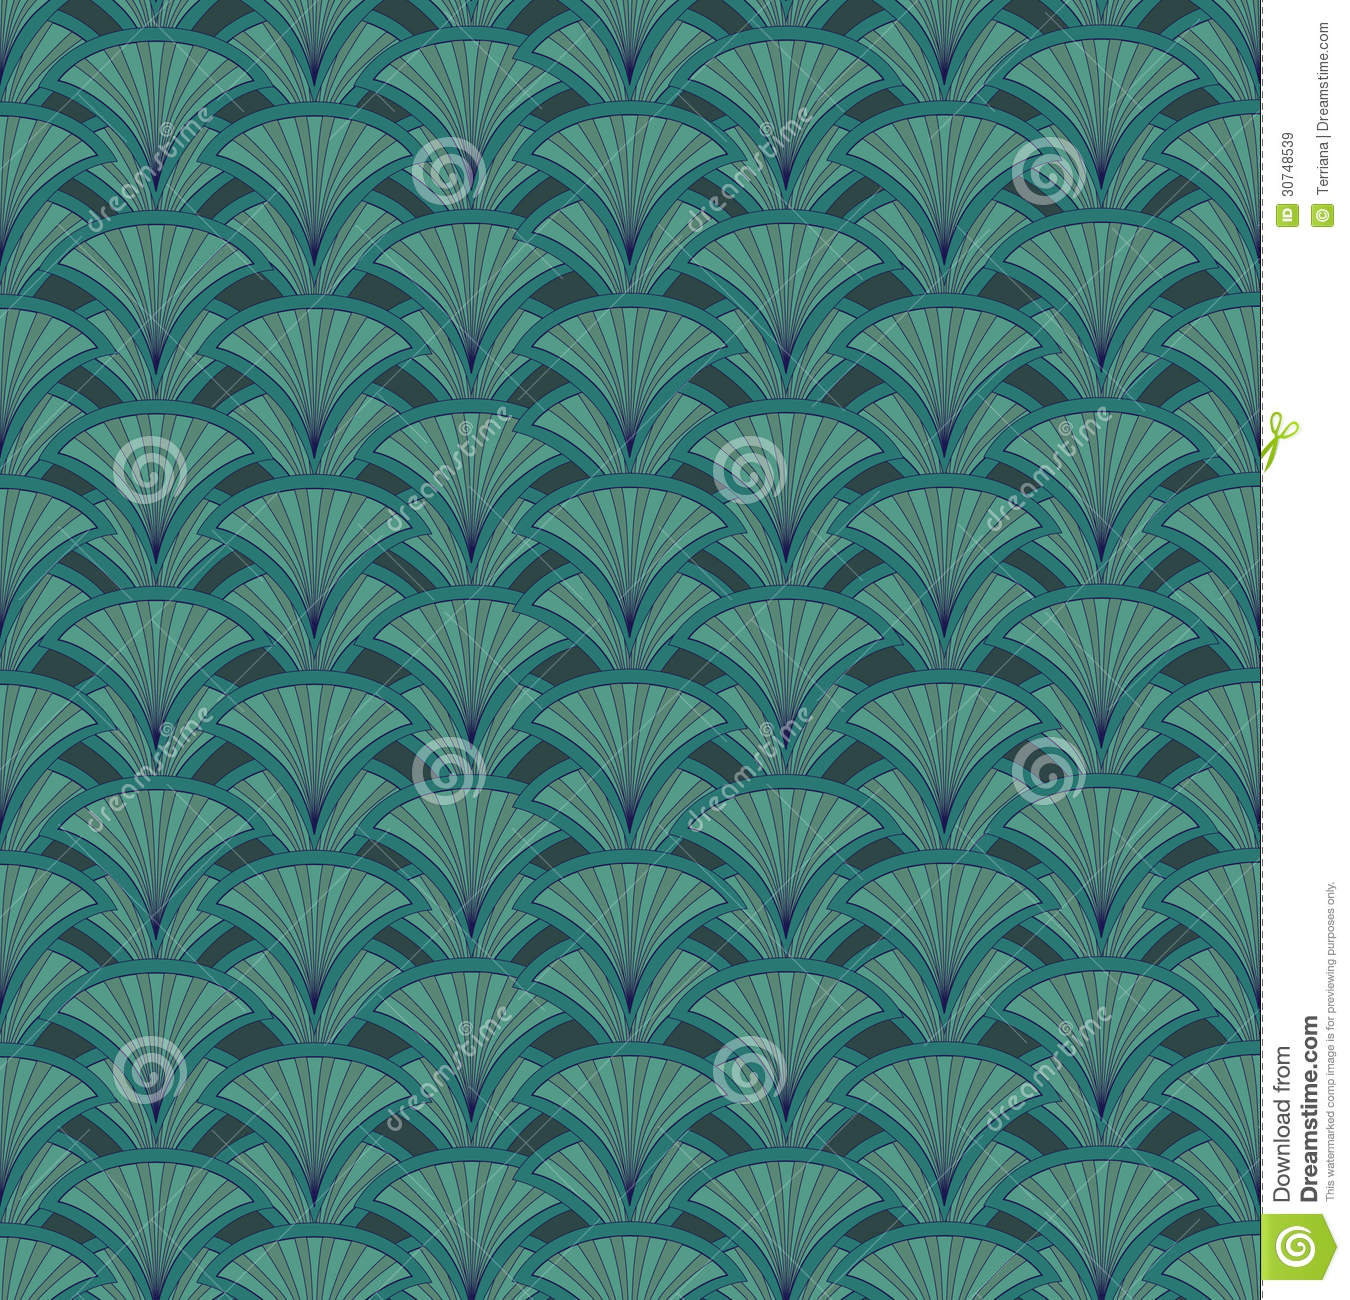 Abstract seamless retro pattern. Green floral back